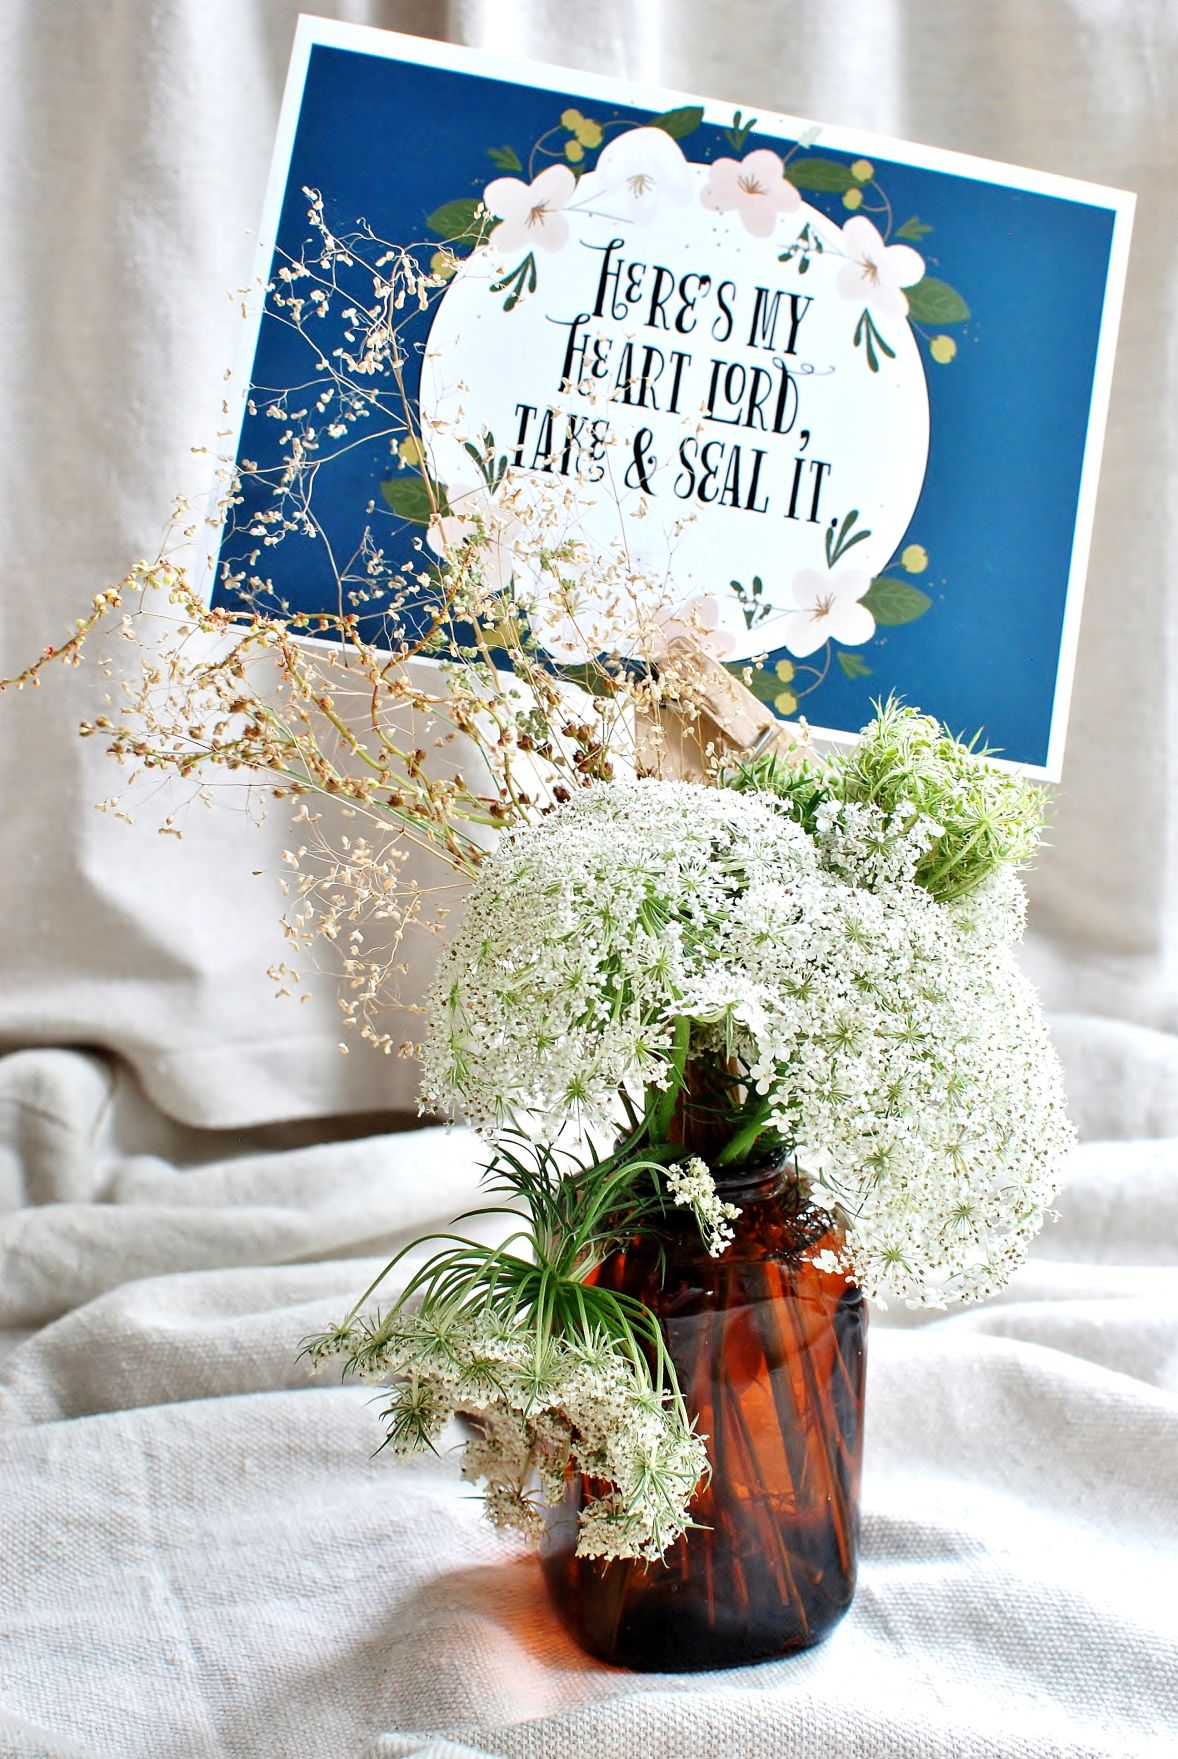 Bud Vases Are Easy Option To Keep Home In Bloom Brazos Life